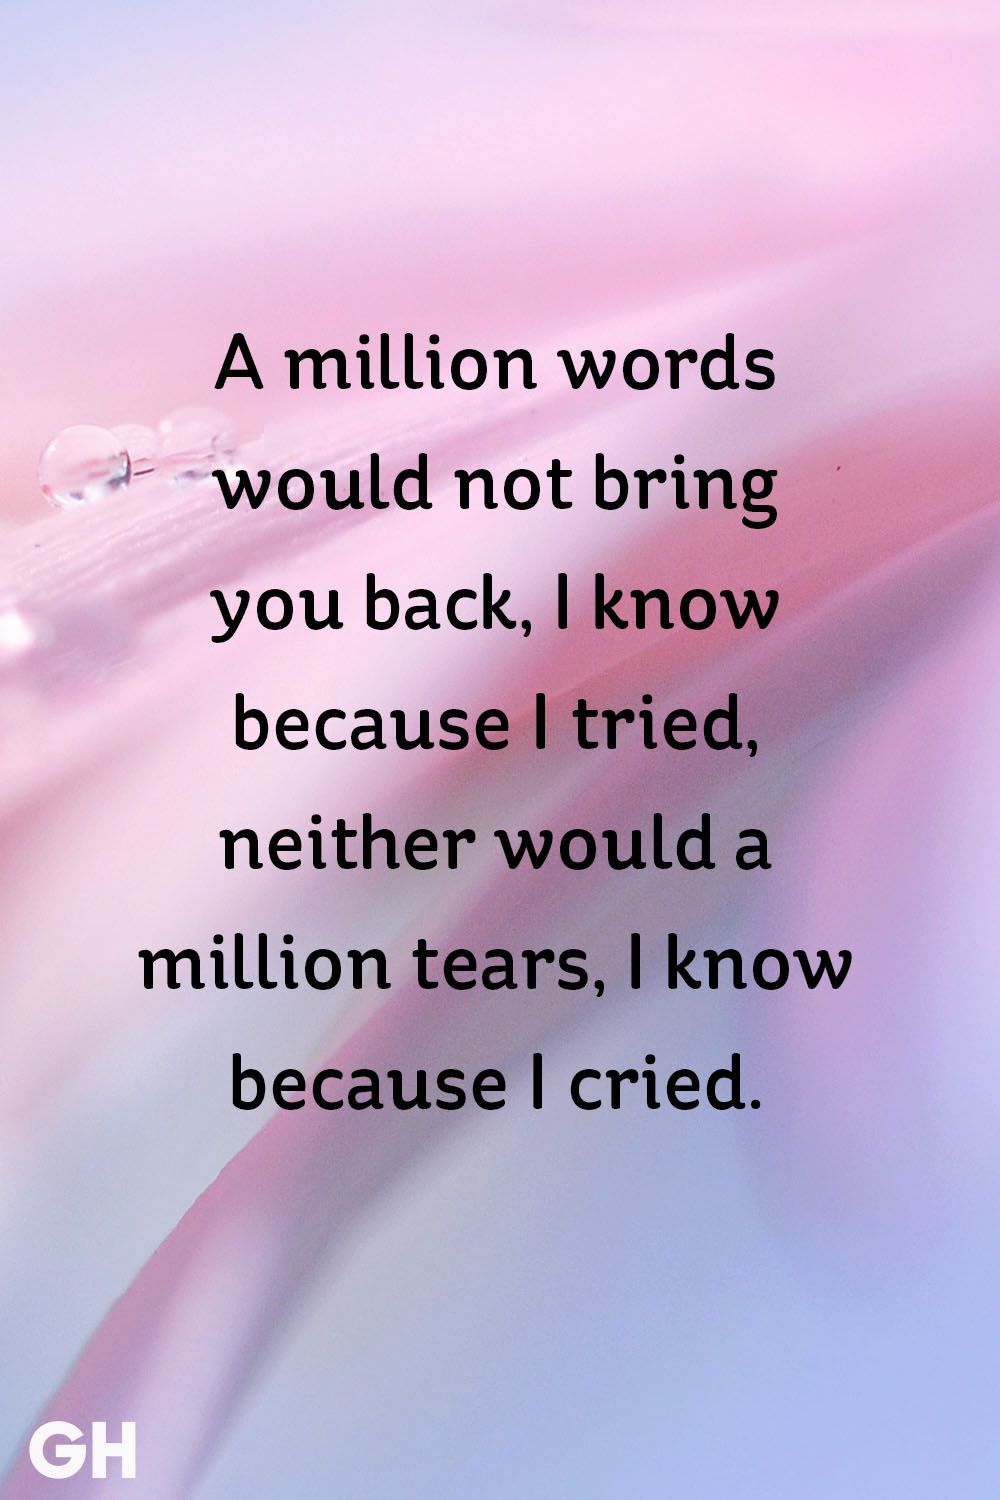 Best Sad Quotes Good Housekeeping 16 Best Sad Quotes Quotes Sayings About Sadness And Tough Times